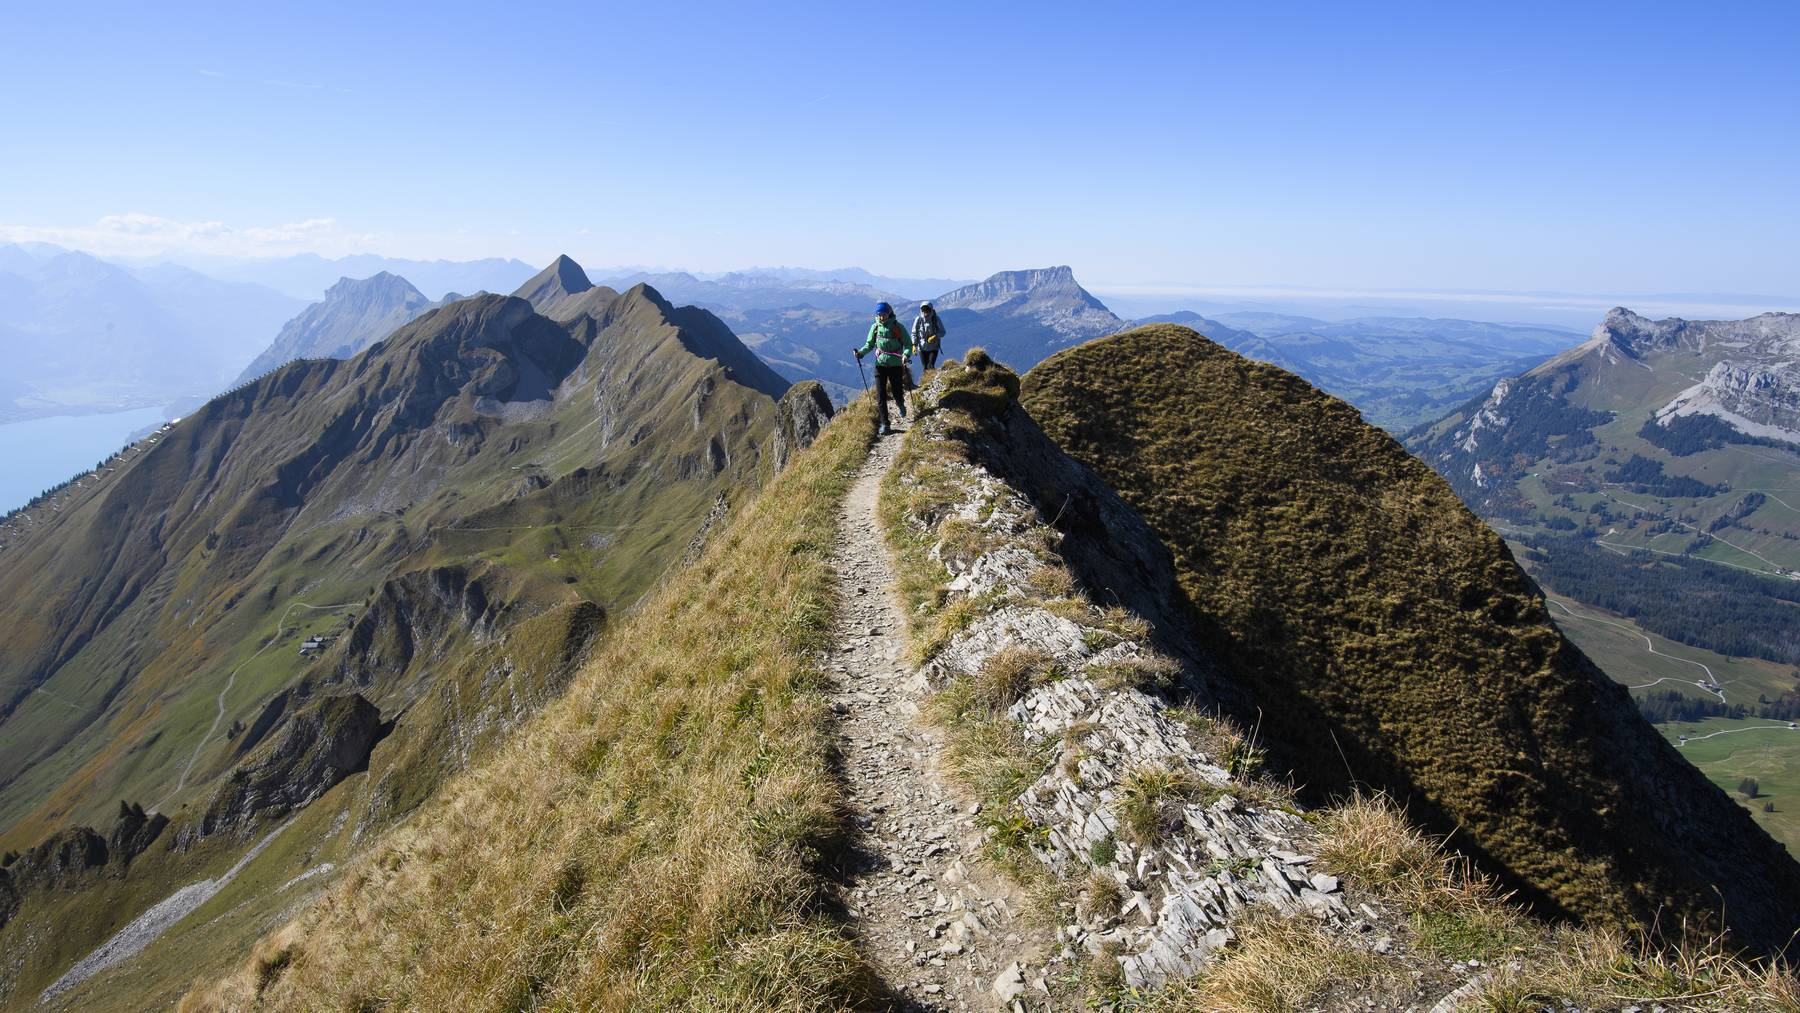 Two women walk on the Brienzer Rothorn Mountain, 2350 meters above sea level, in the Bernese Alps on the boundary between the Cantons of Berne and Lucerne, Switzerland, on Wednesday, October 10, 2018.